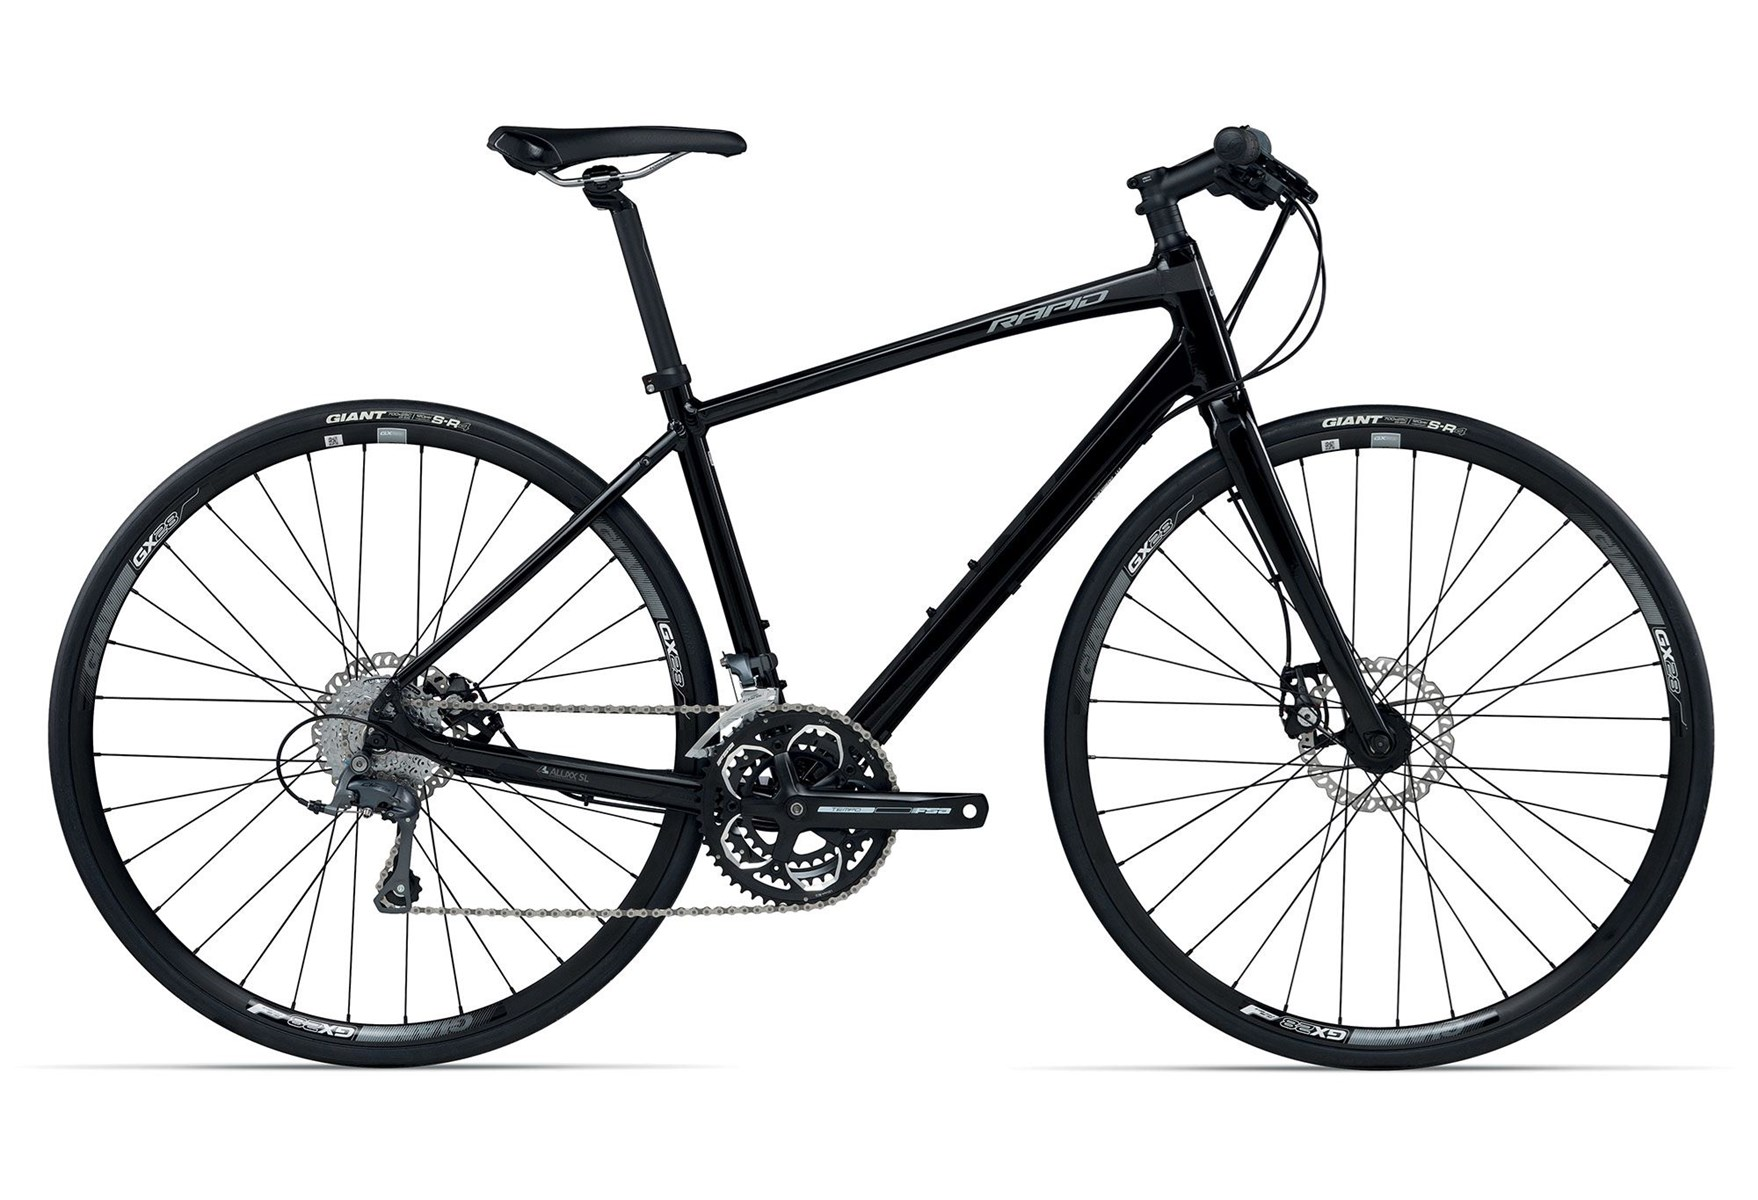 2017 Gents Hybrid Bike 0 Be The First To Add A Review